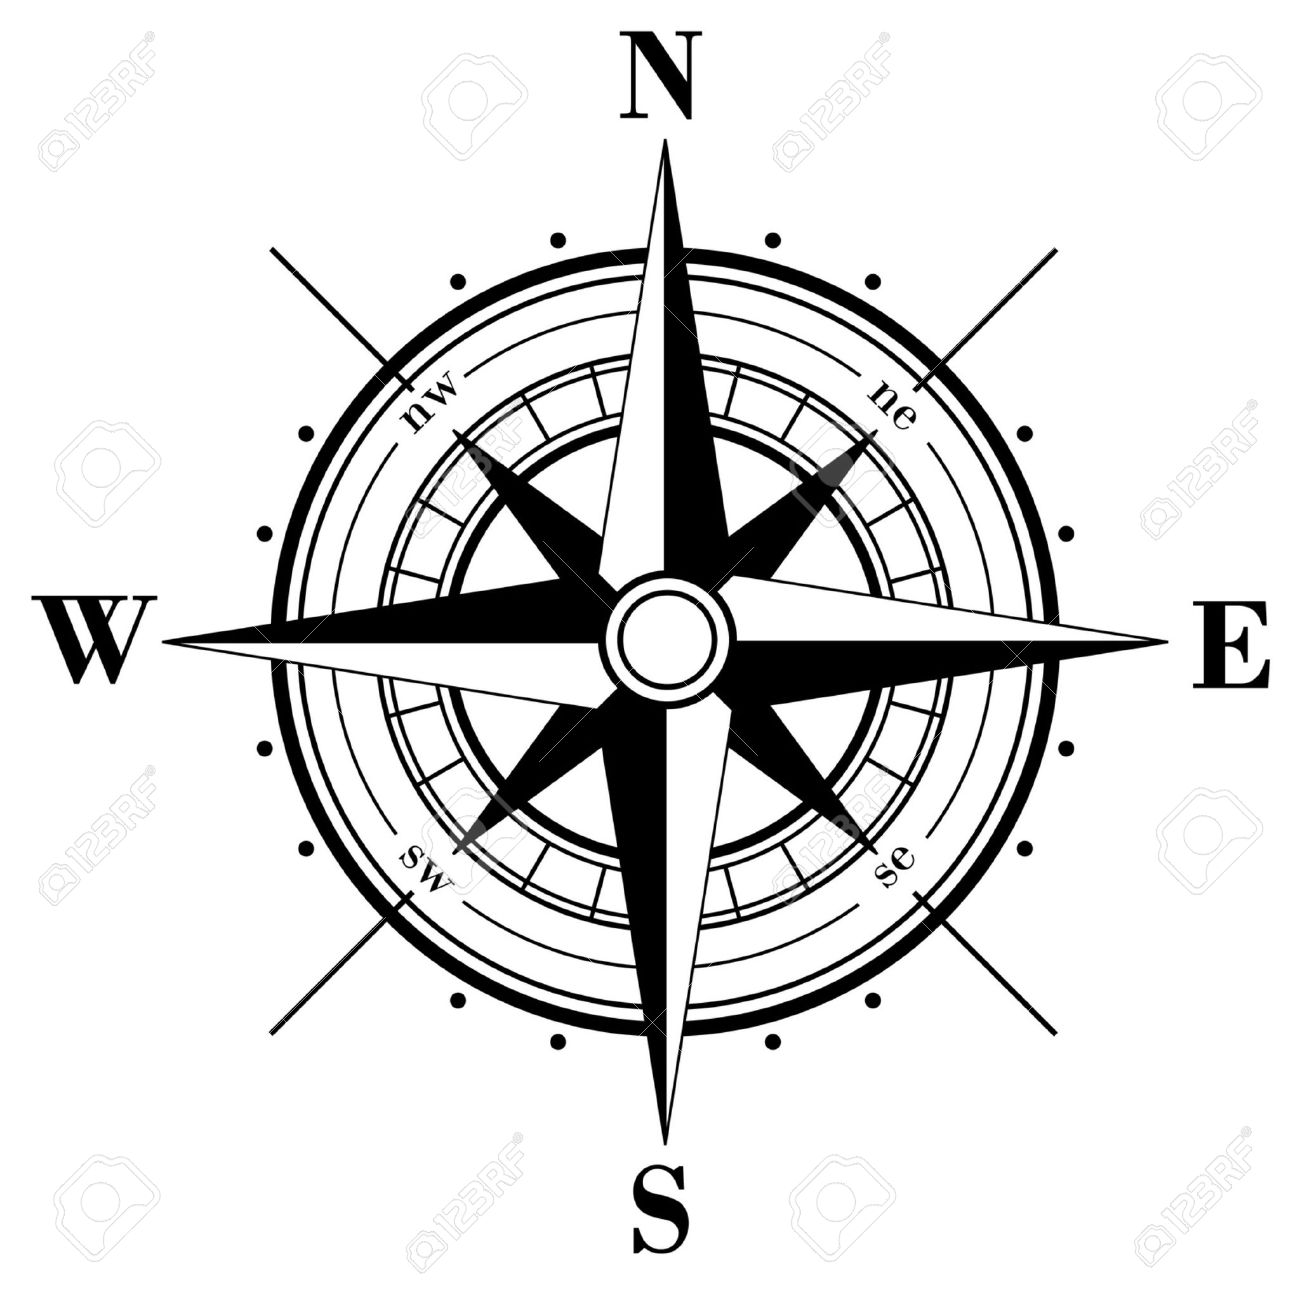 Map Compass Vector At Getdrawings Free For Personal Use Map